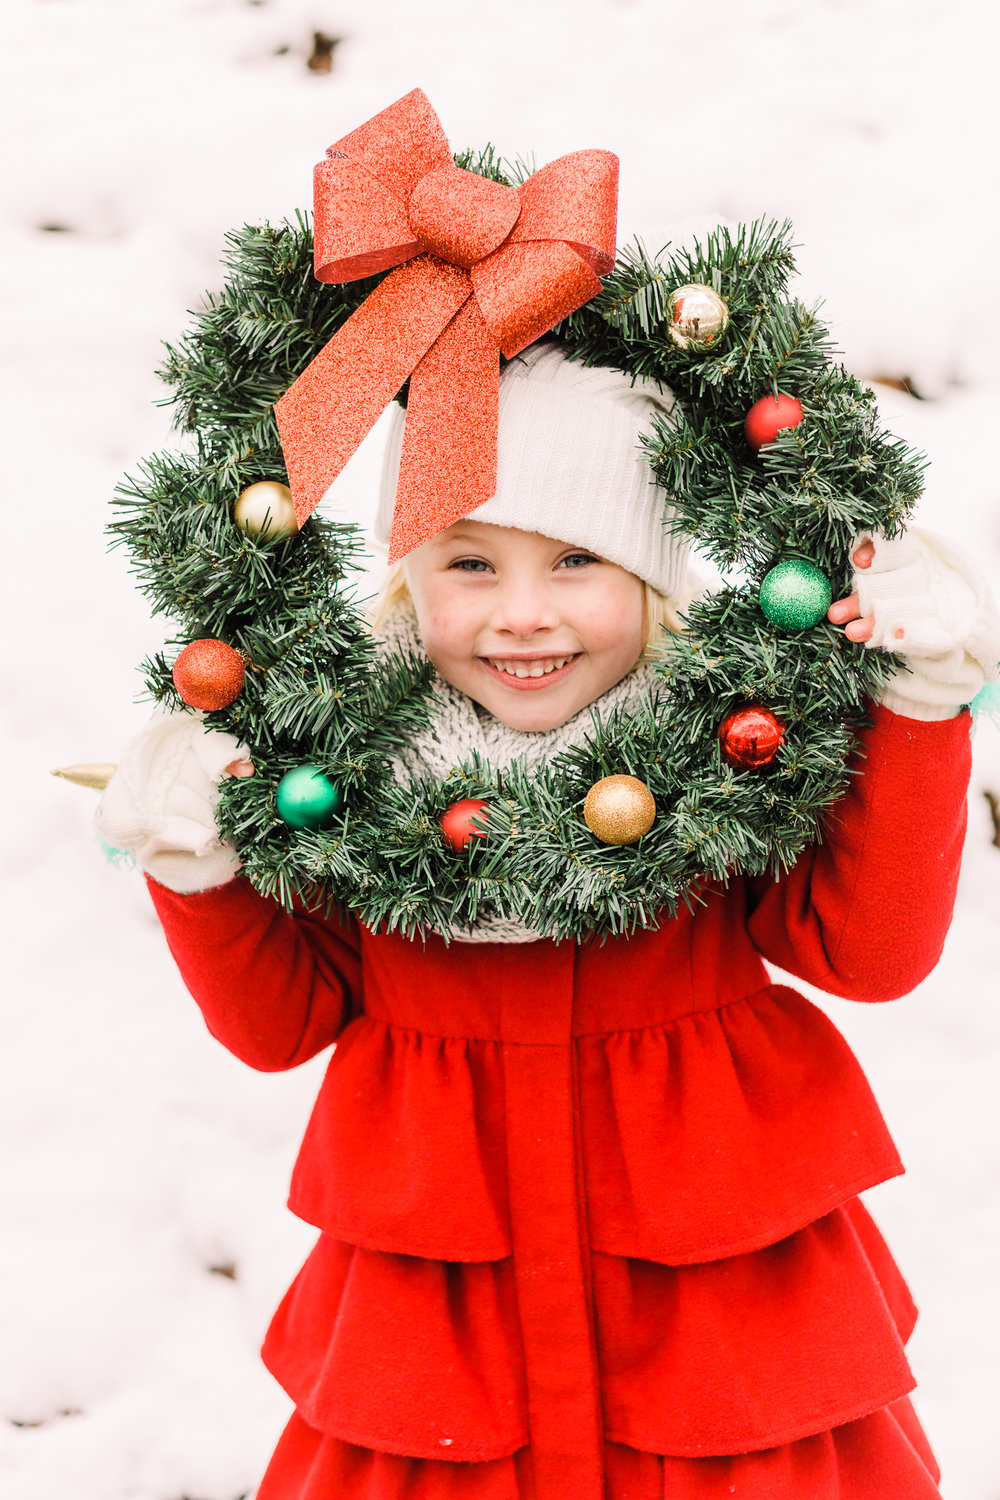 Kalamazoo Family Photographer | Christmas Card Picture with Wreath